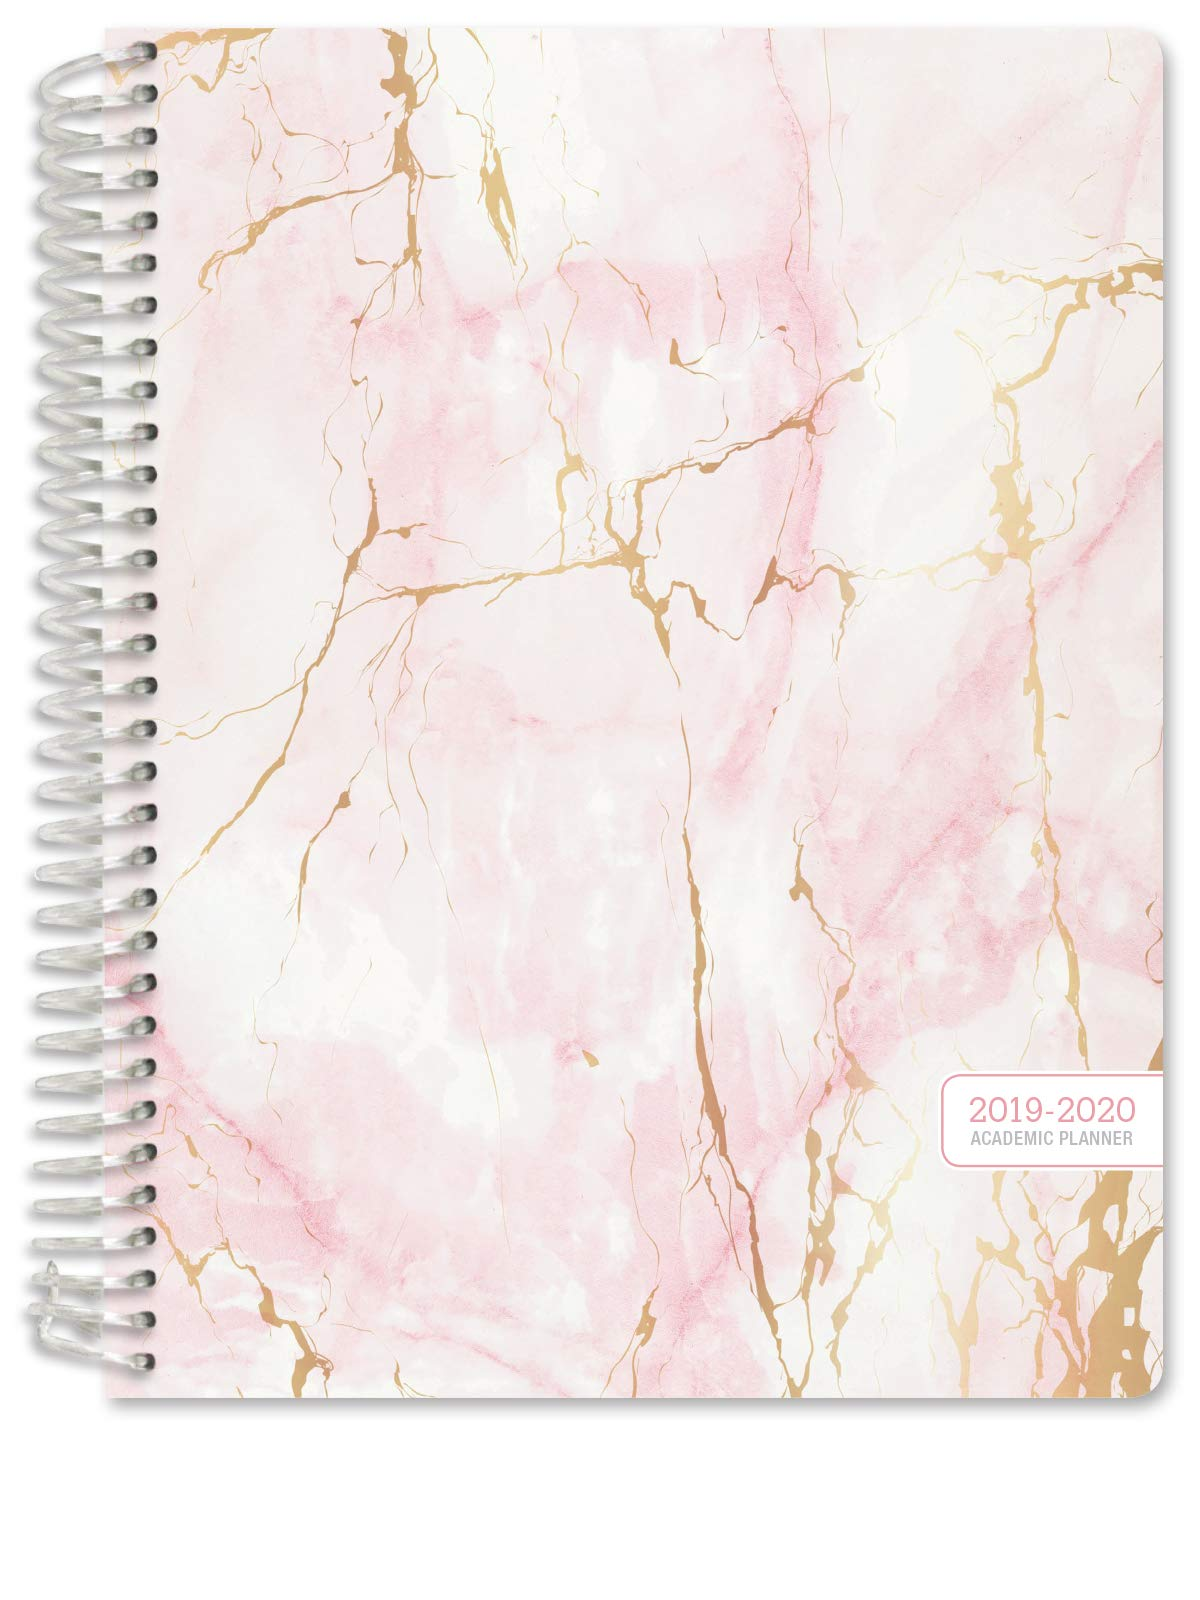 HARDCOVER Academic Year 2019-2020 Planner: (June 2019 Through July 2020) 8.5''x11'' Daily Weekly Monthly Planner Yearly Agenda. Bonus Bookmark, Pocket Folder and Sticky Note Set (Pink Marble) by Global Printed Products (Image #8)